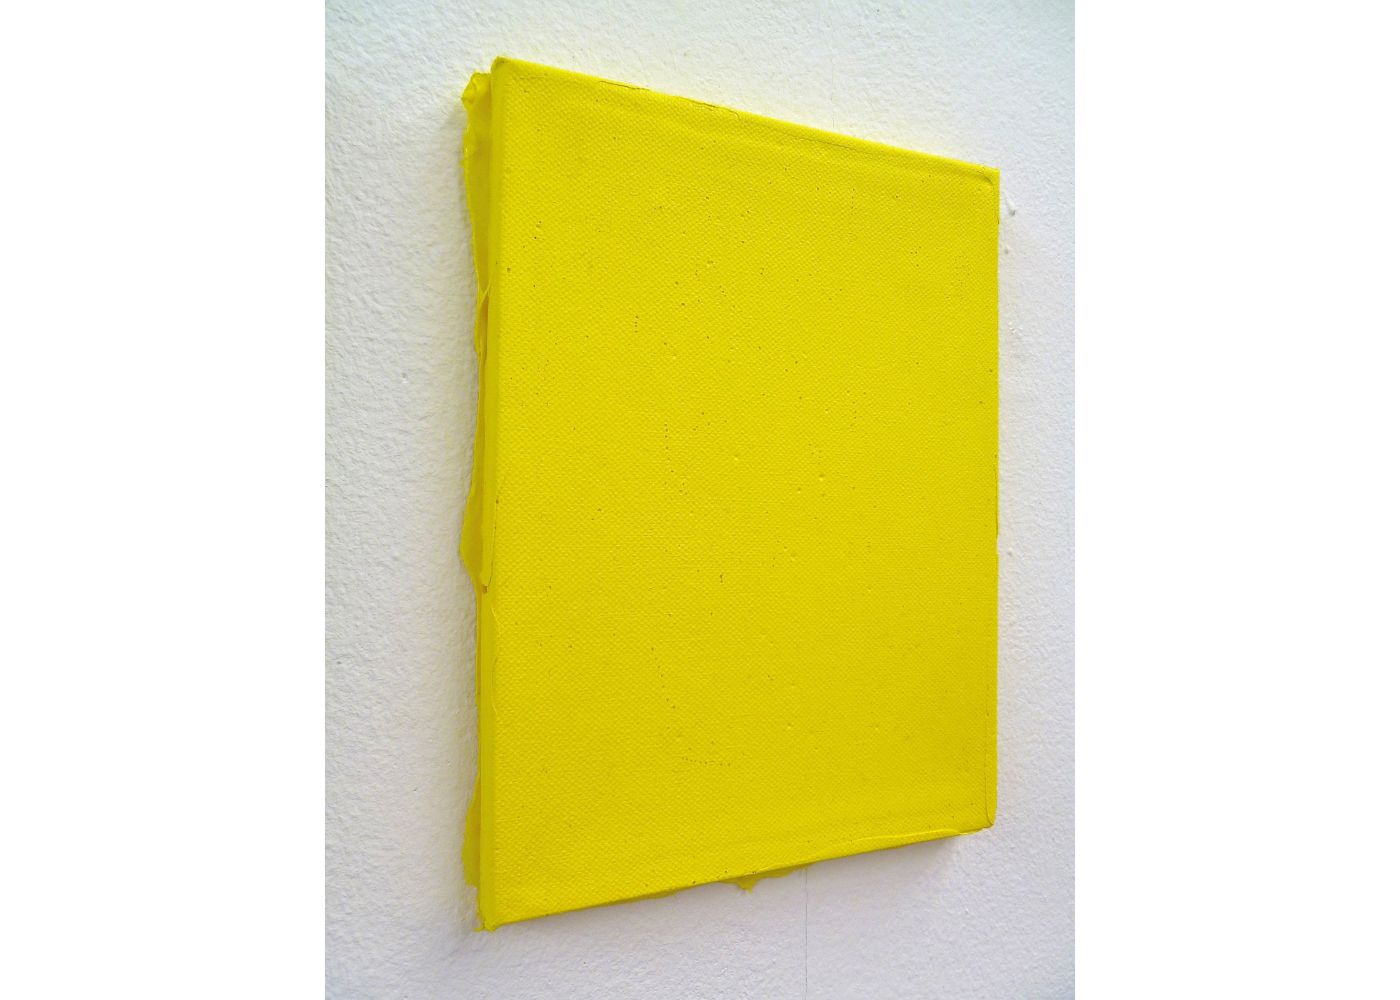 Seitenaufnahme, Color for Paint, yellow